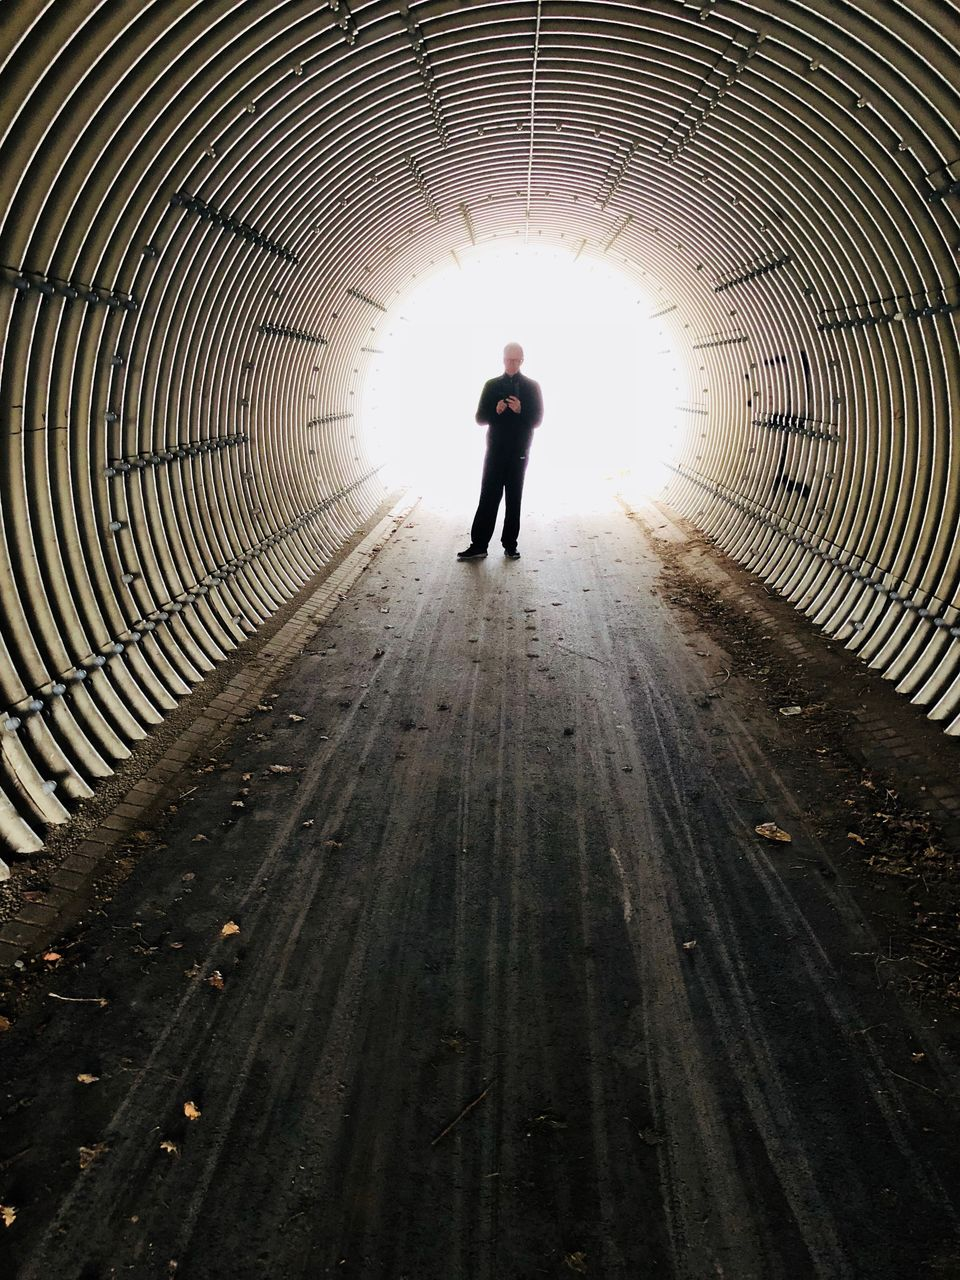 Full Length Of Man Standing In Tunnel